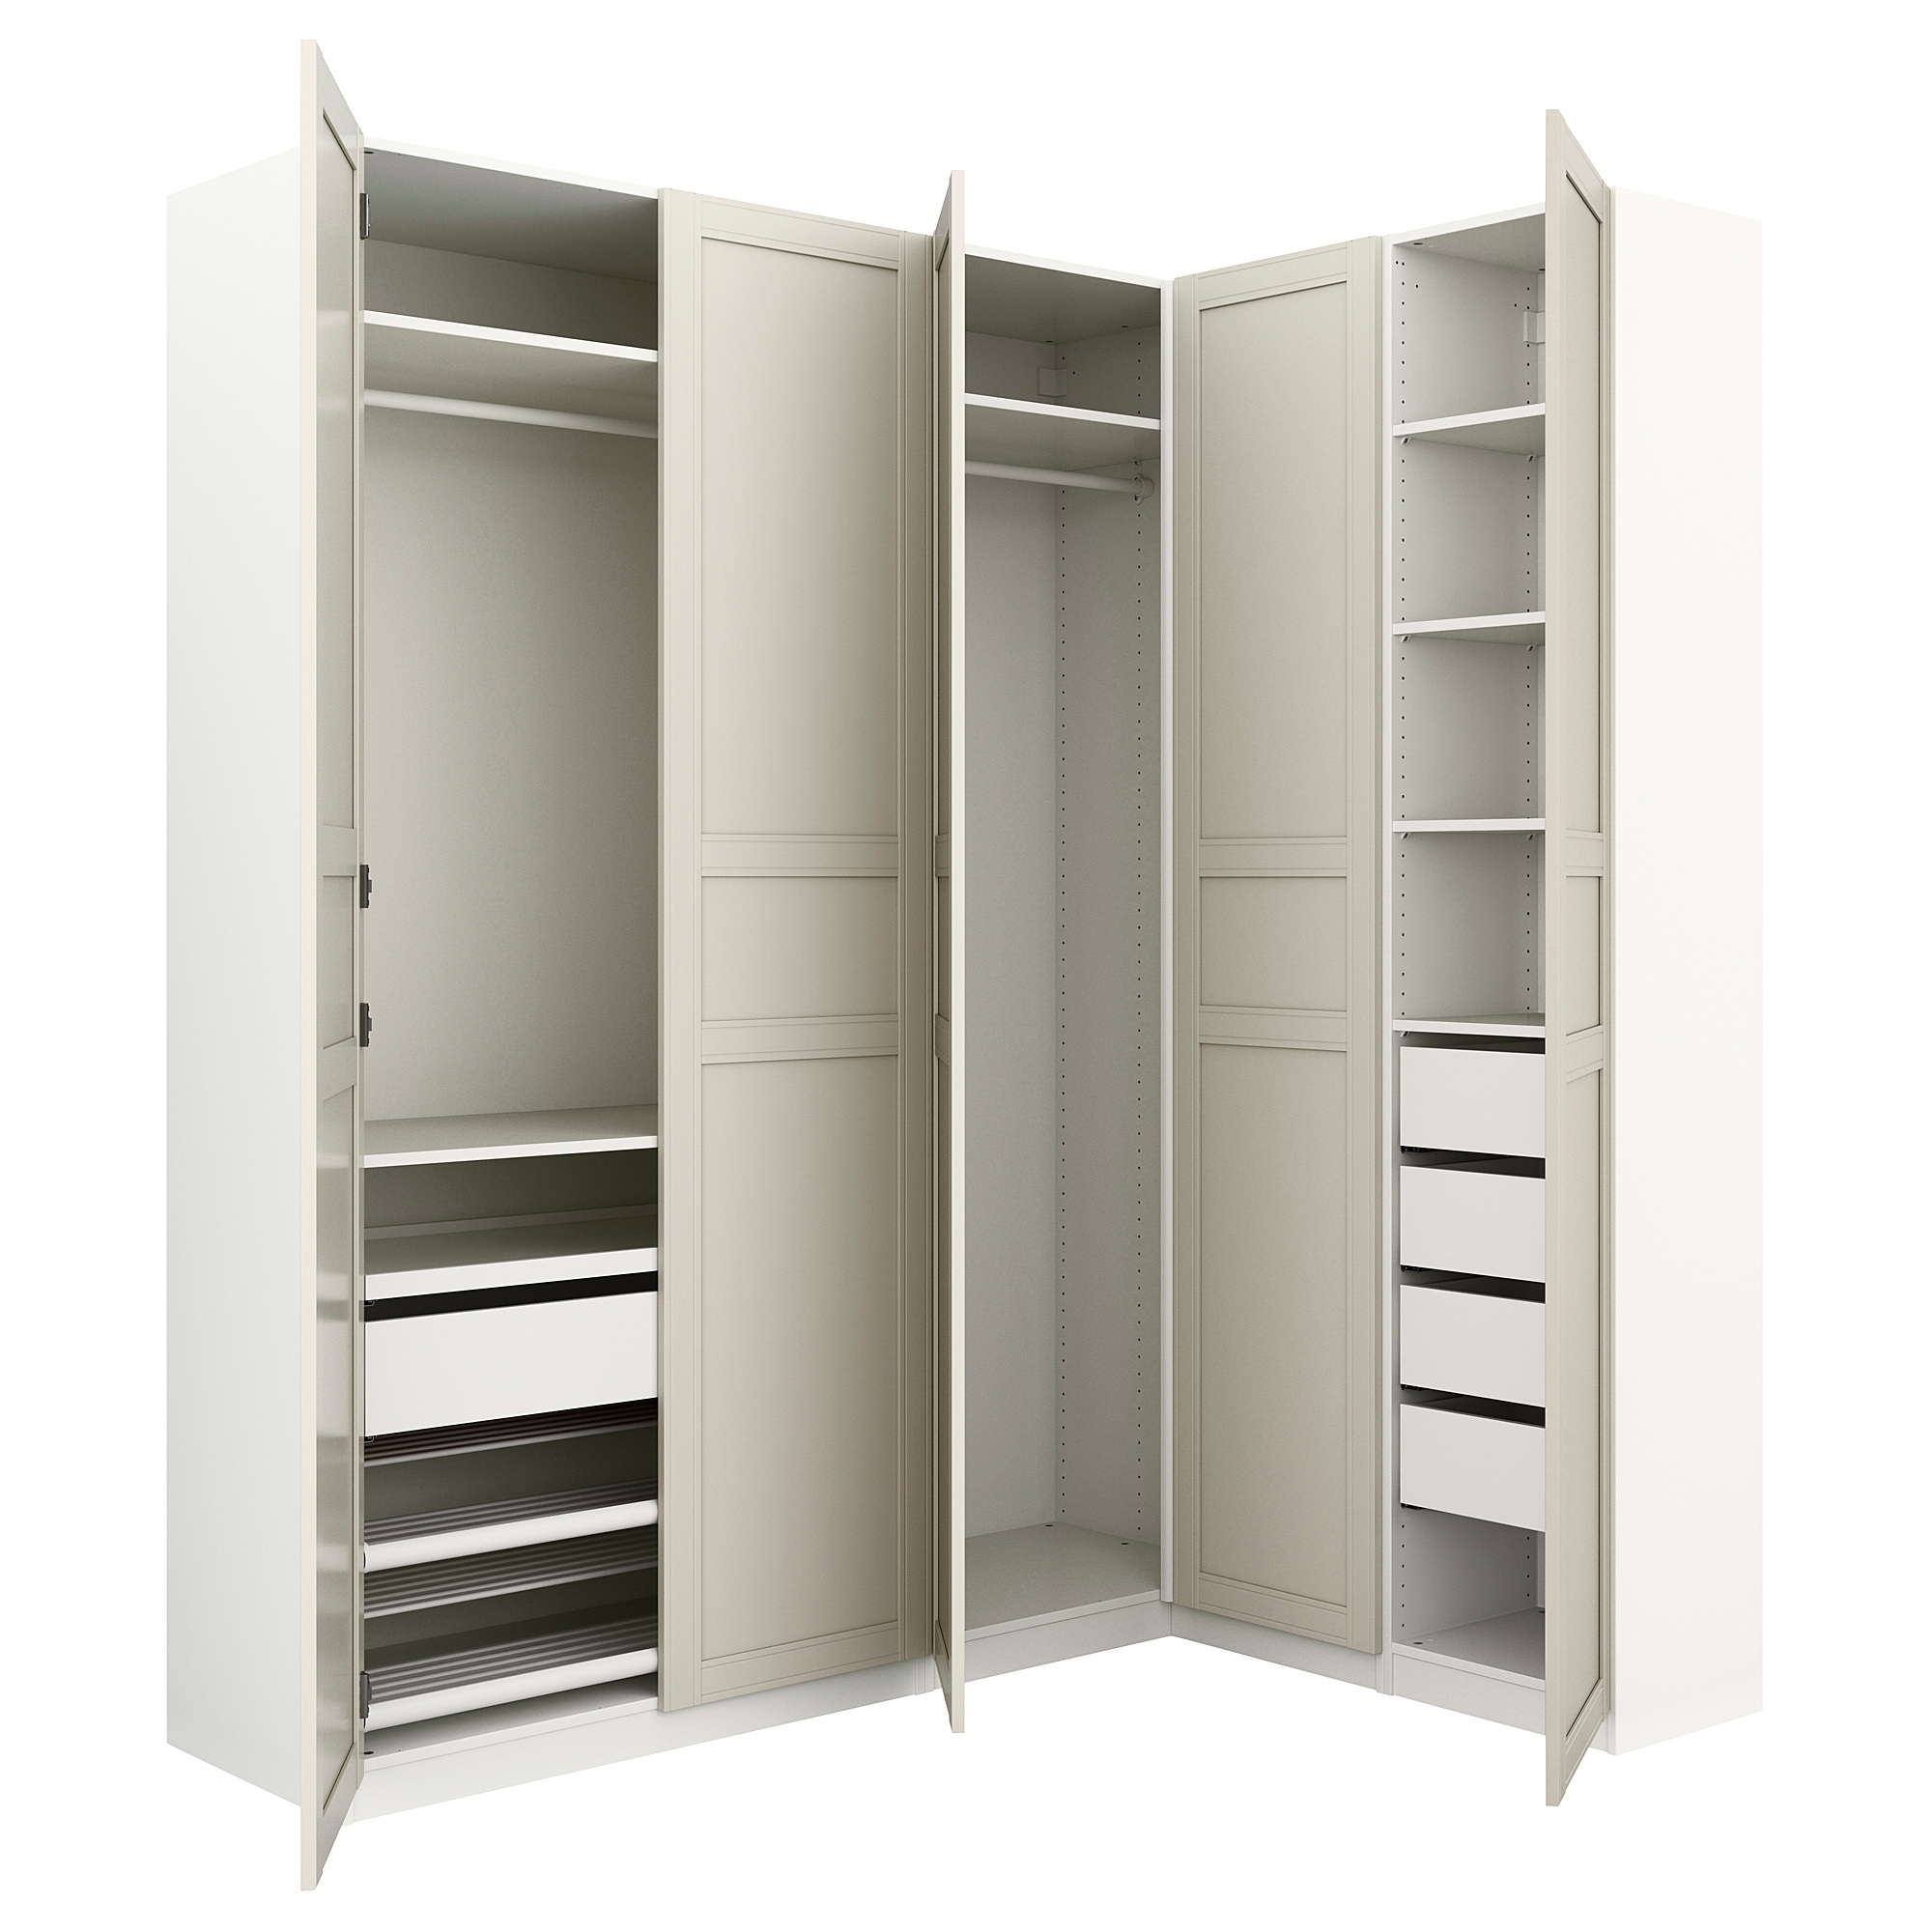 "White Corner Wardrobes In Fashionable Pax Corner Wardrobe – 63 1/8/73 7/8x79 1/4 "" – Ikea (View 4 of 15)"